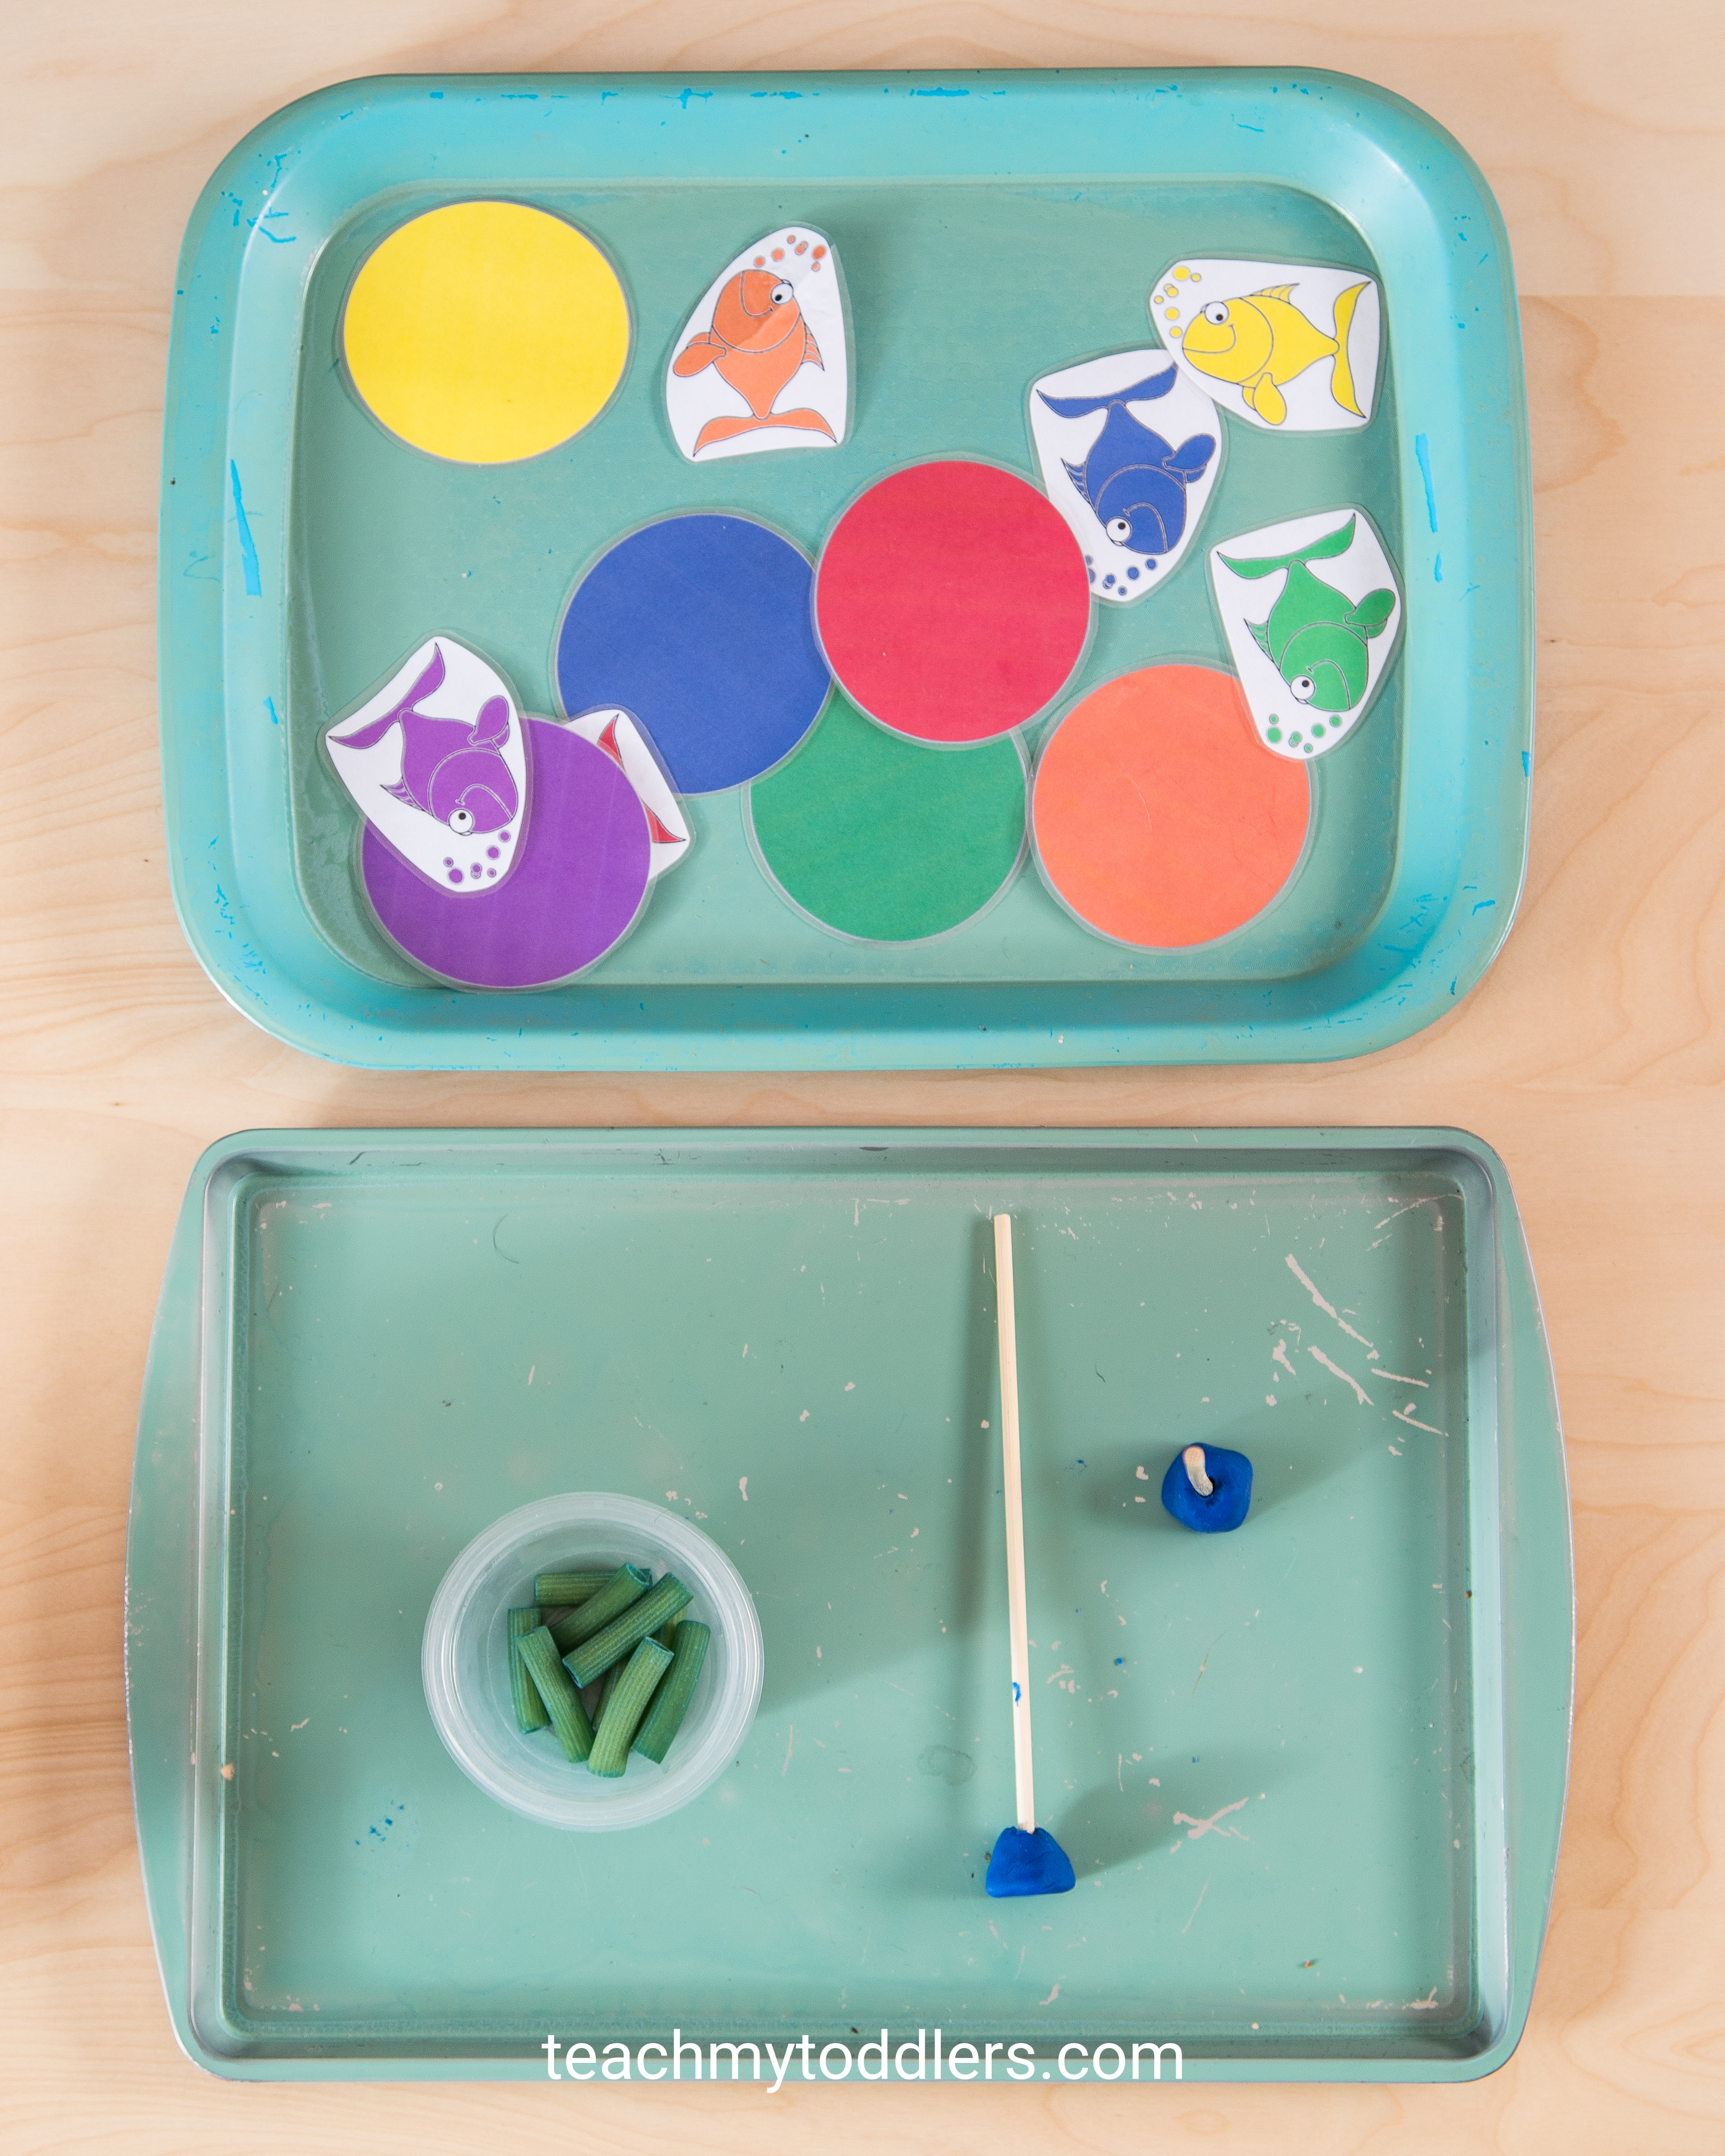 A fun game to teach your toddler the color blue